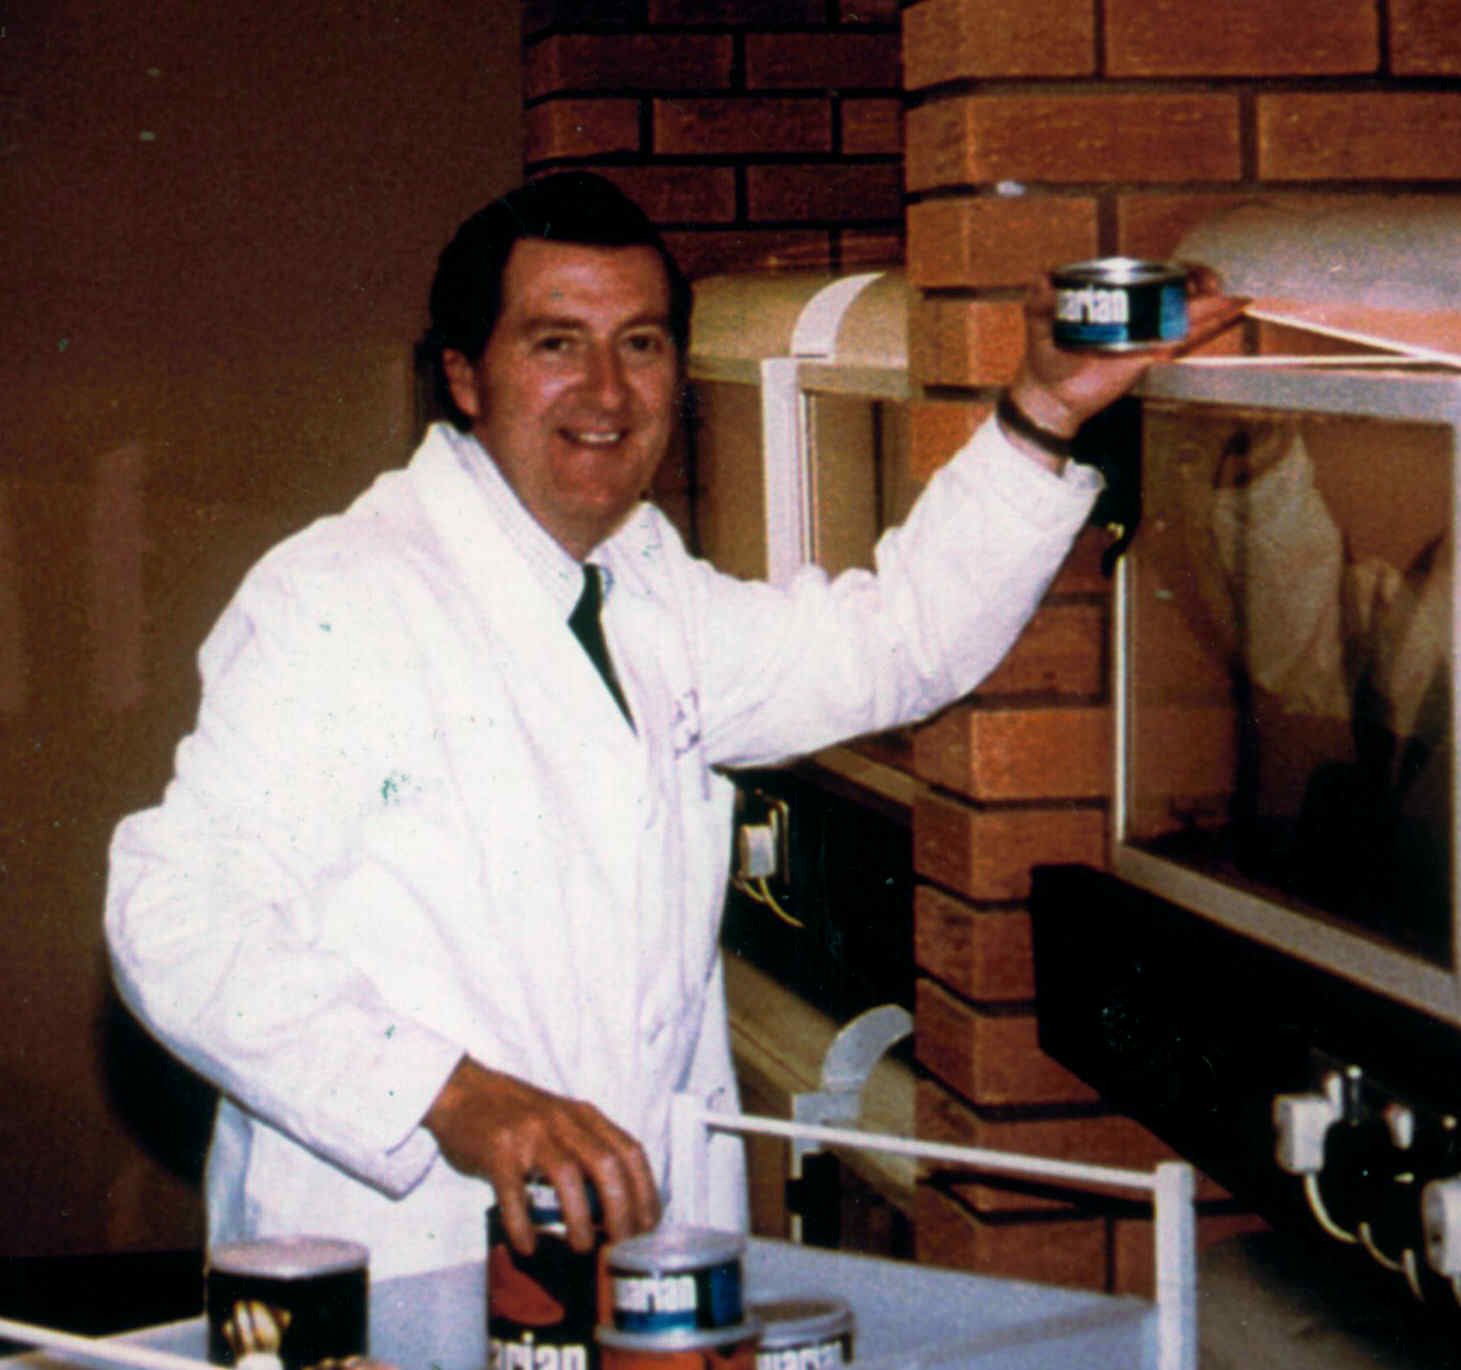 Dr.David Ford in the Aquarian Laboratories c. 1975